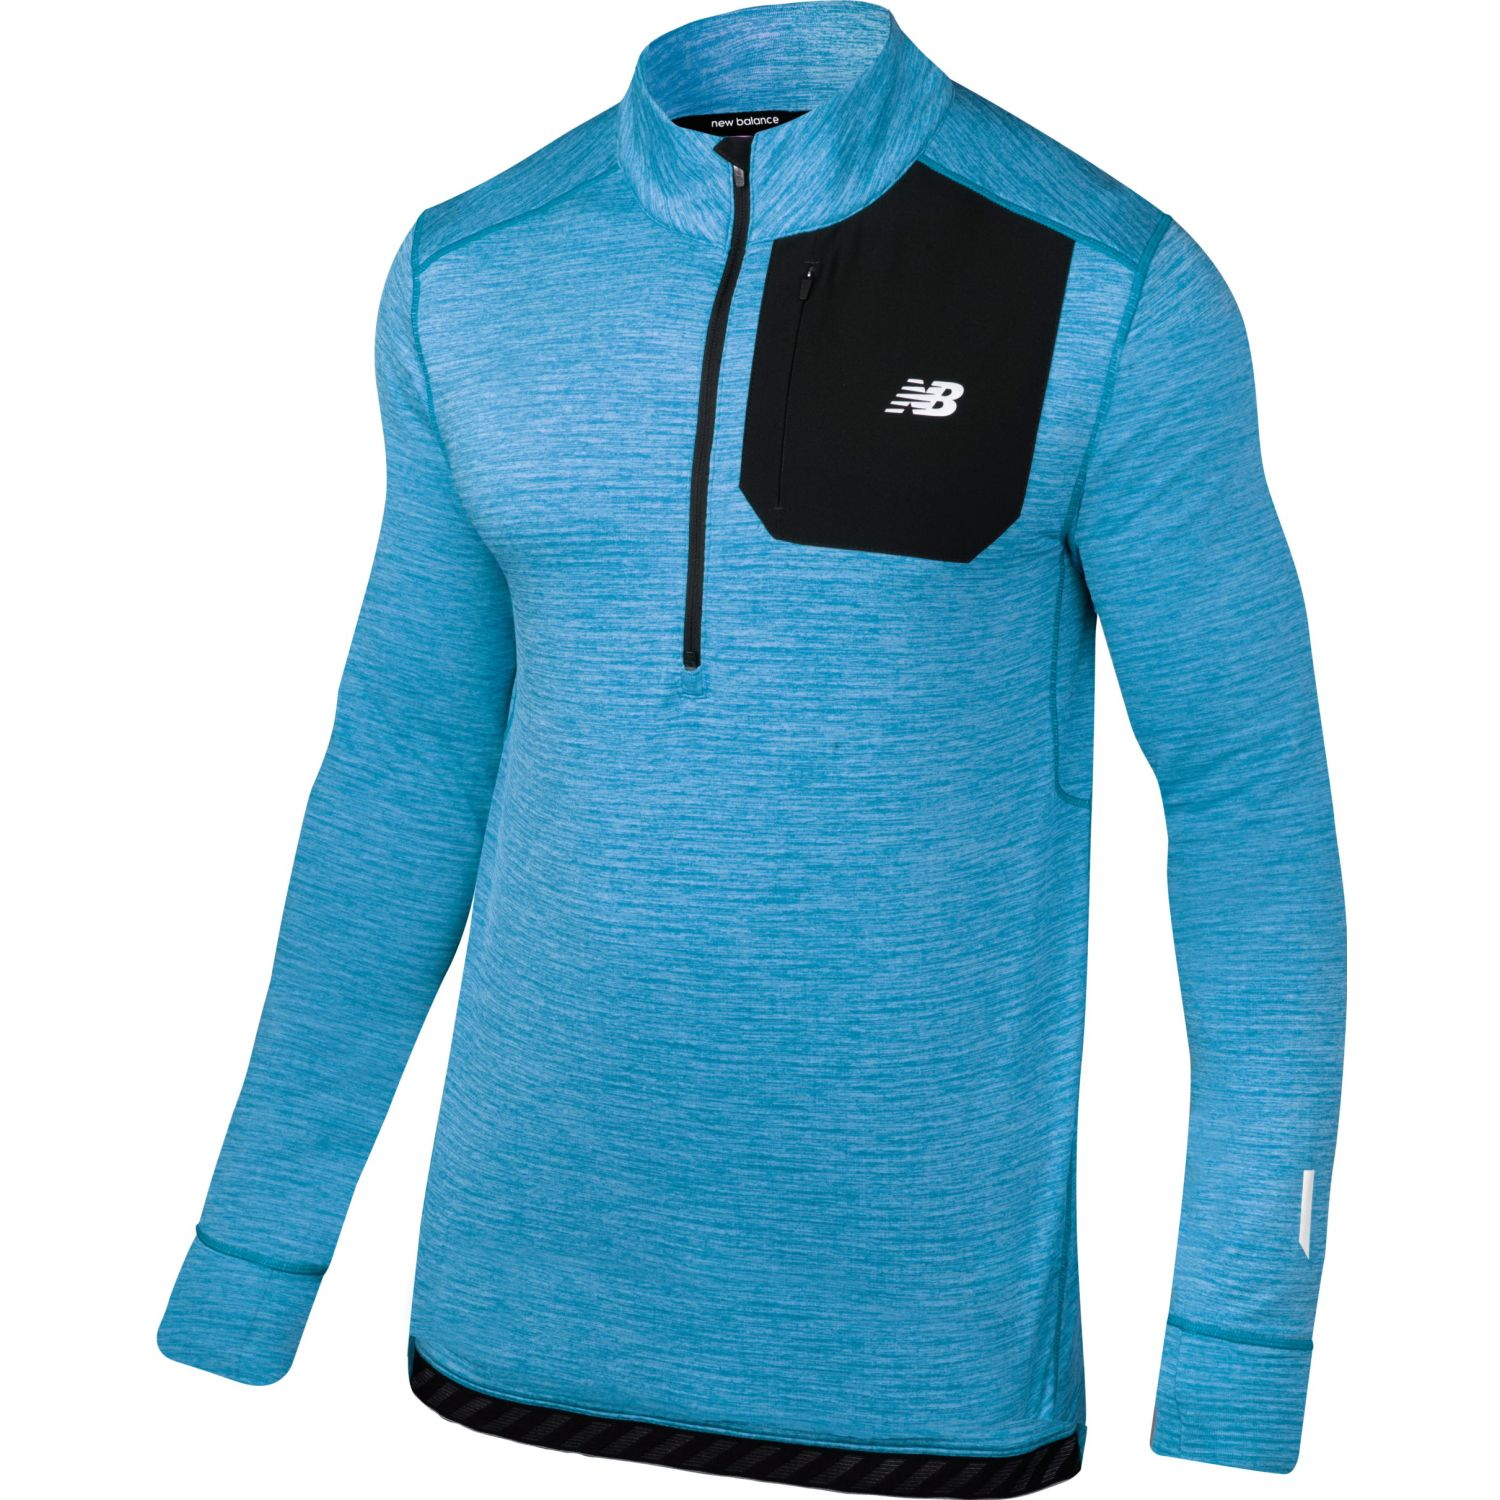 New Balance Newbalance Men Quarter Zip Azul Azul Jerseys